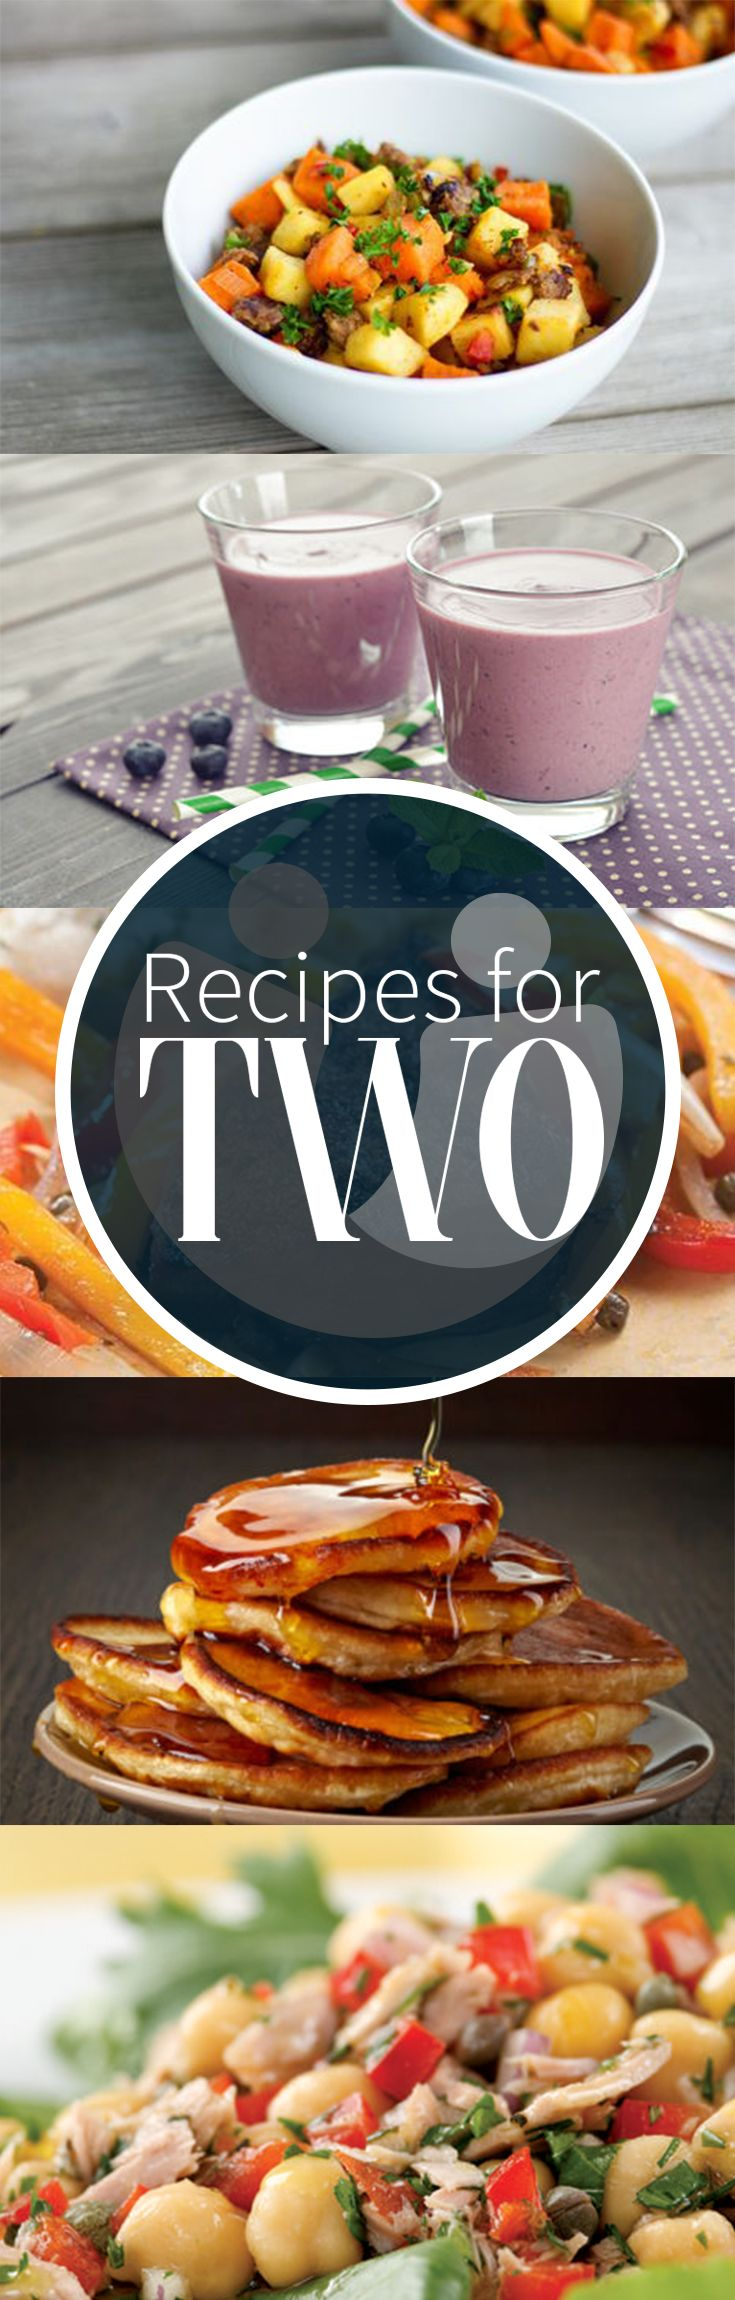 Whether you always cook for two or want to whip up something special for date night, check out these delicious and healthy dinner ideas!